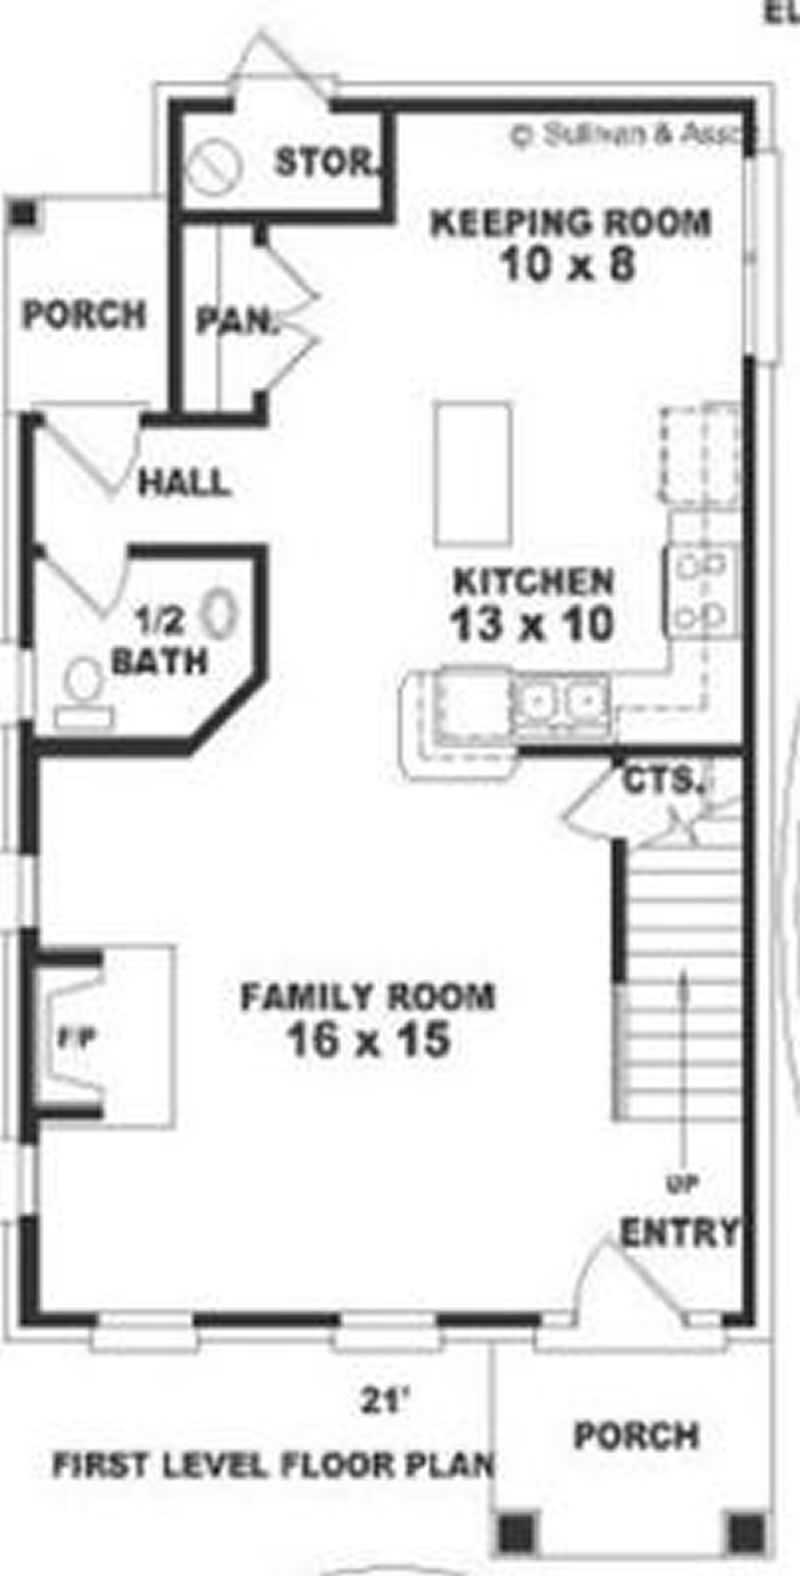 Small bungalow multi level house plans home design for Multi level floor plans